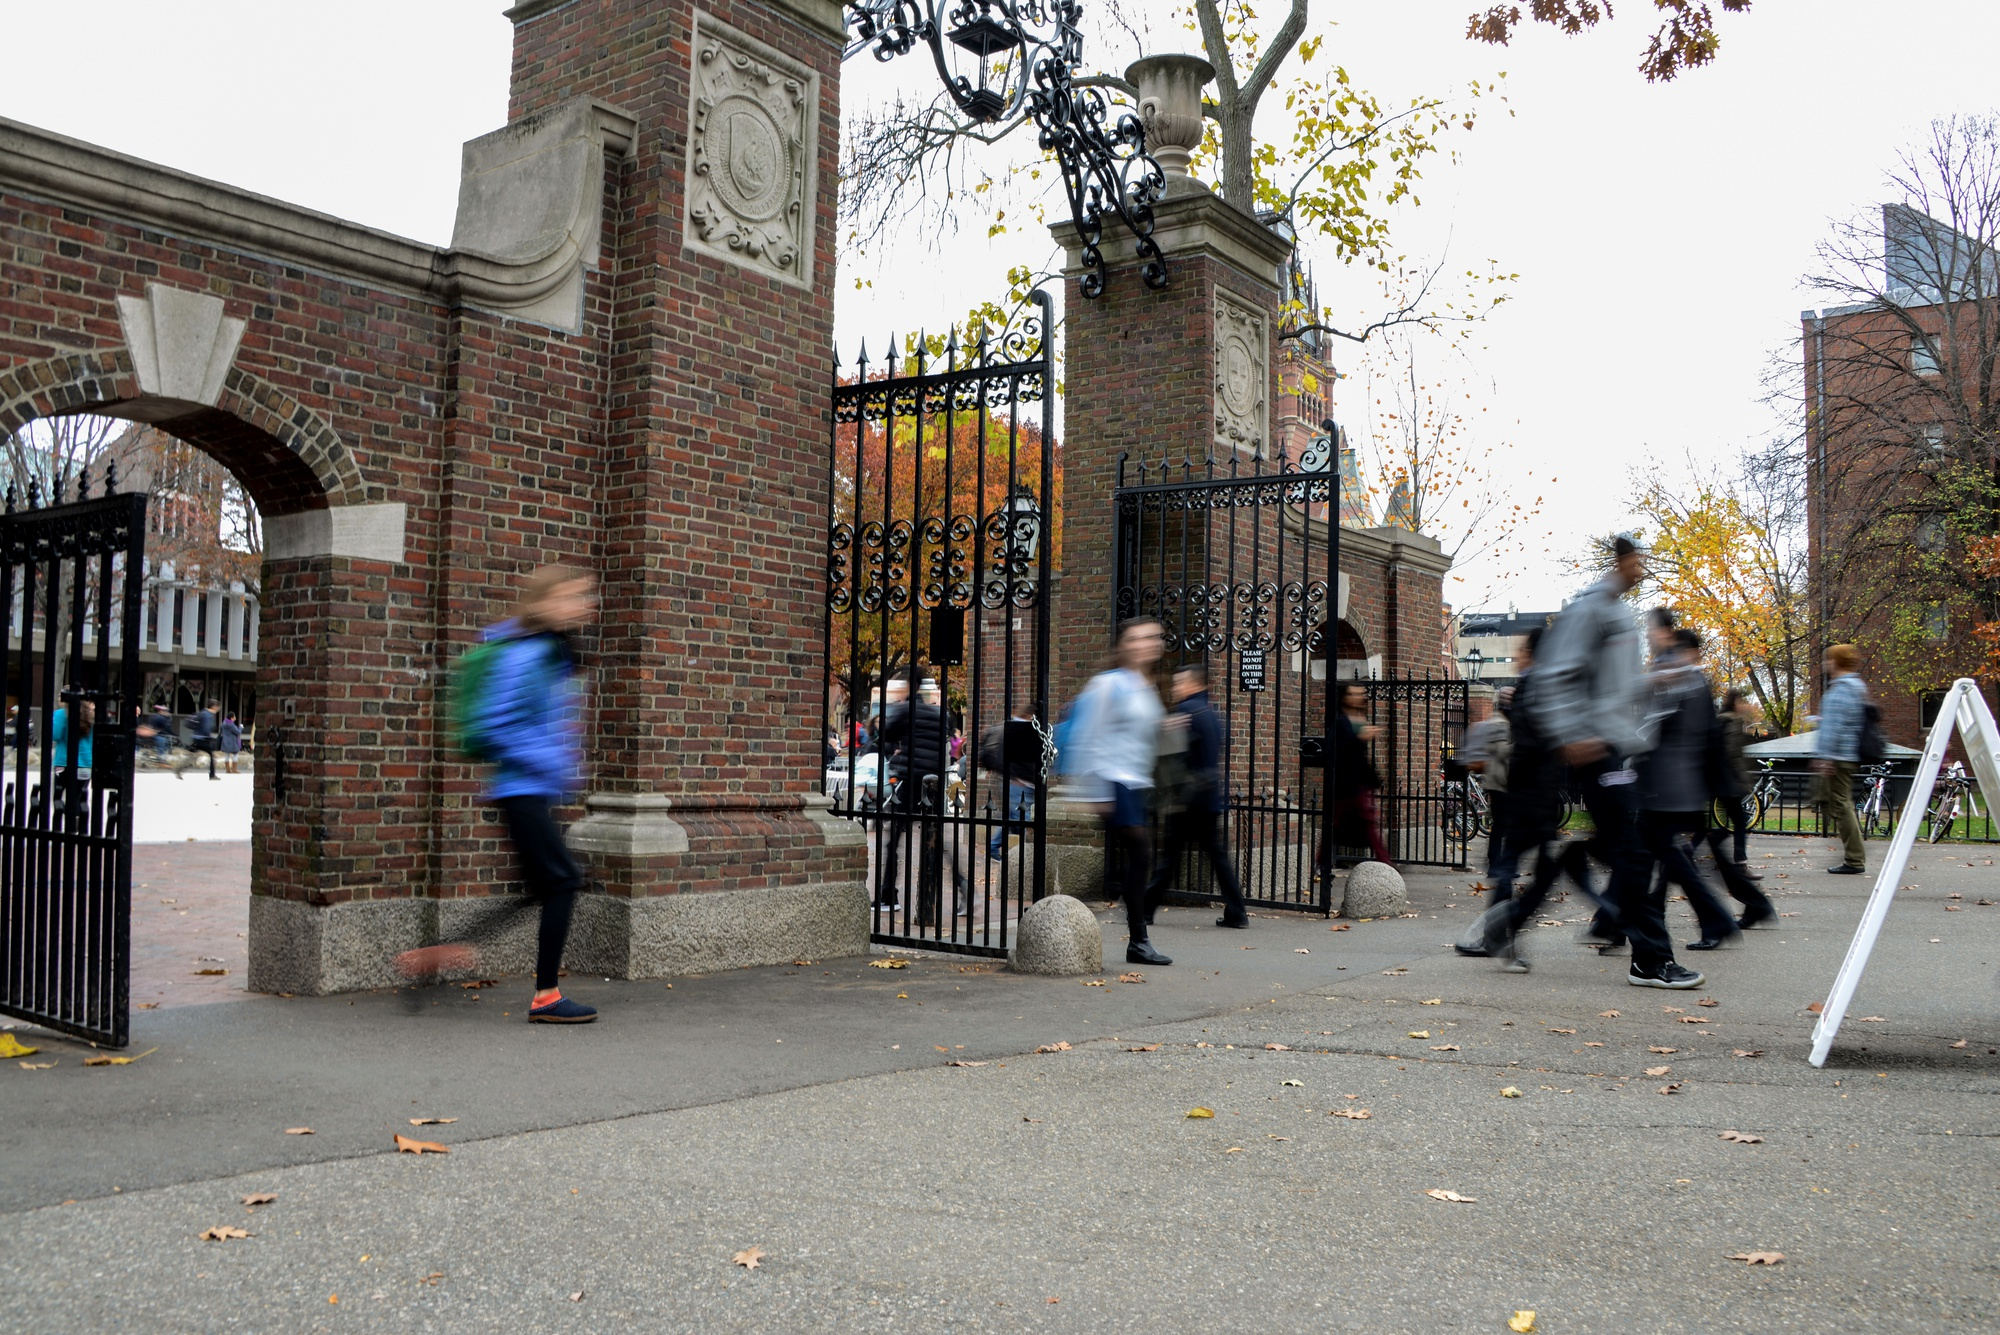 Students rush through Meyer Gate, featured as part of a historical military tour led by military veteran Specialist J. Holden Gibbons.  George von Lengerke Meyer, Class of 1879, was named secretary of the Navy in 1909 by President William Howard Taft.